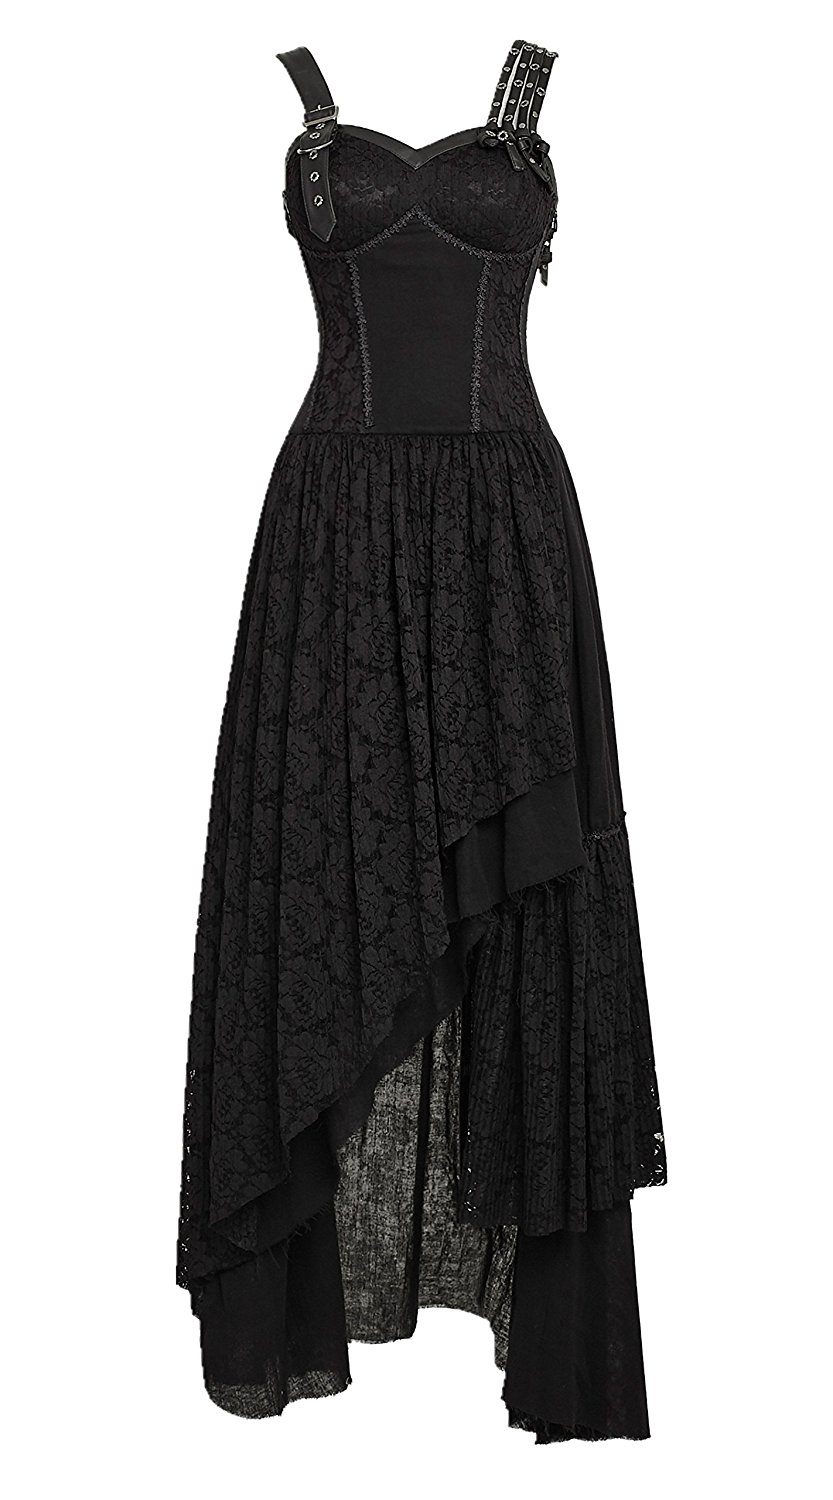 23a62b8ab66 Get Quotations · Punk Rave Gothic Victorian Steampunk Corset Dress Floral  Lace Layered Long Dress